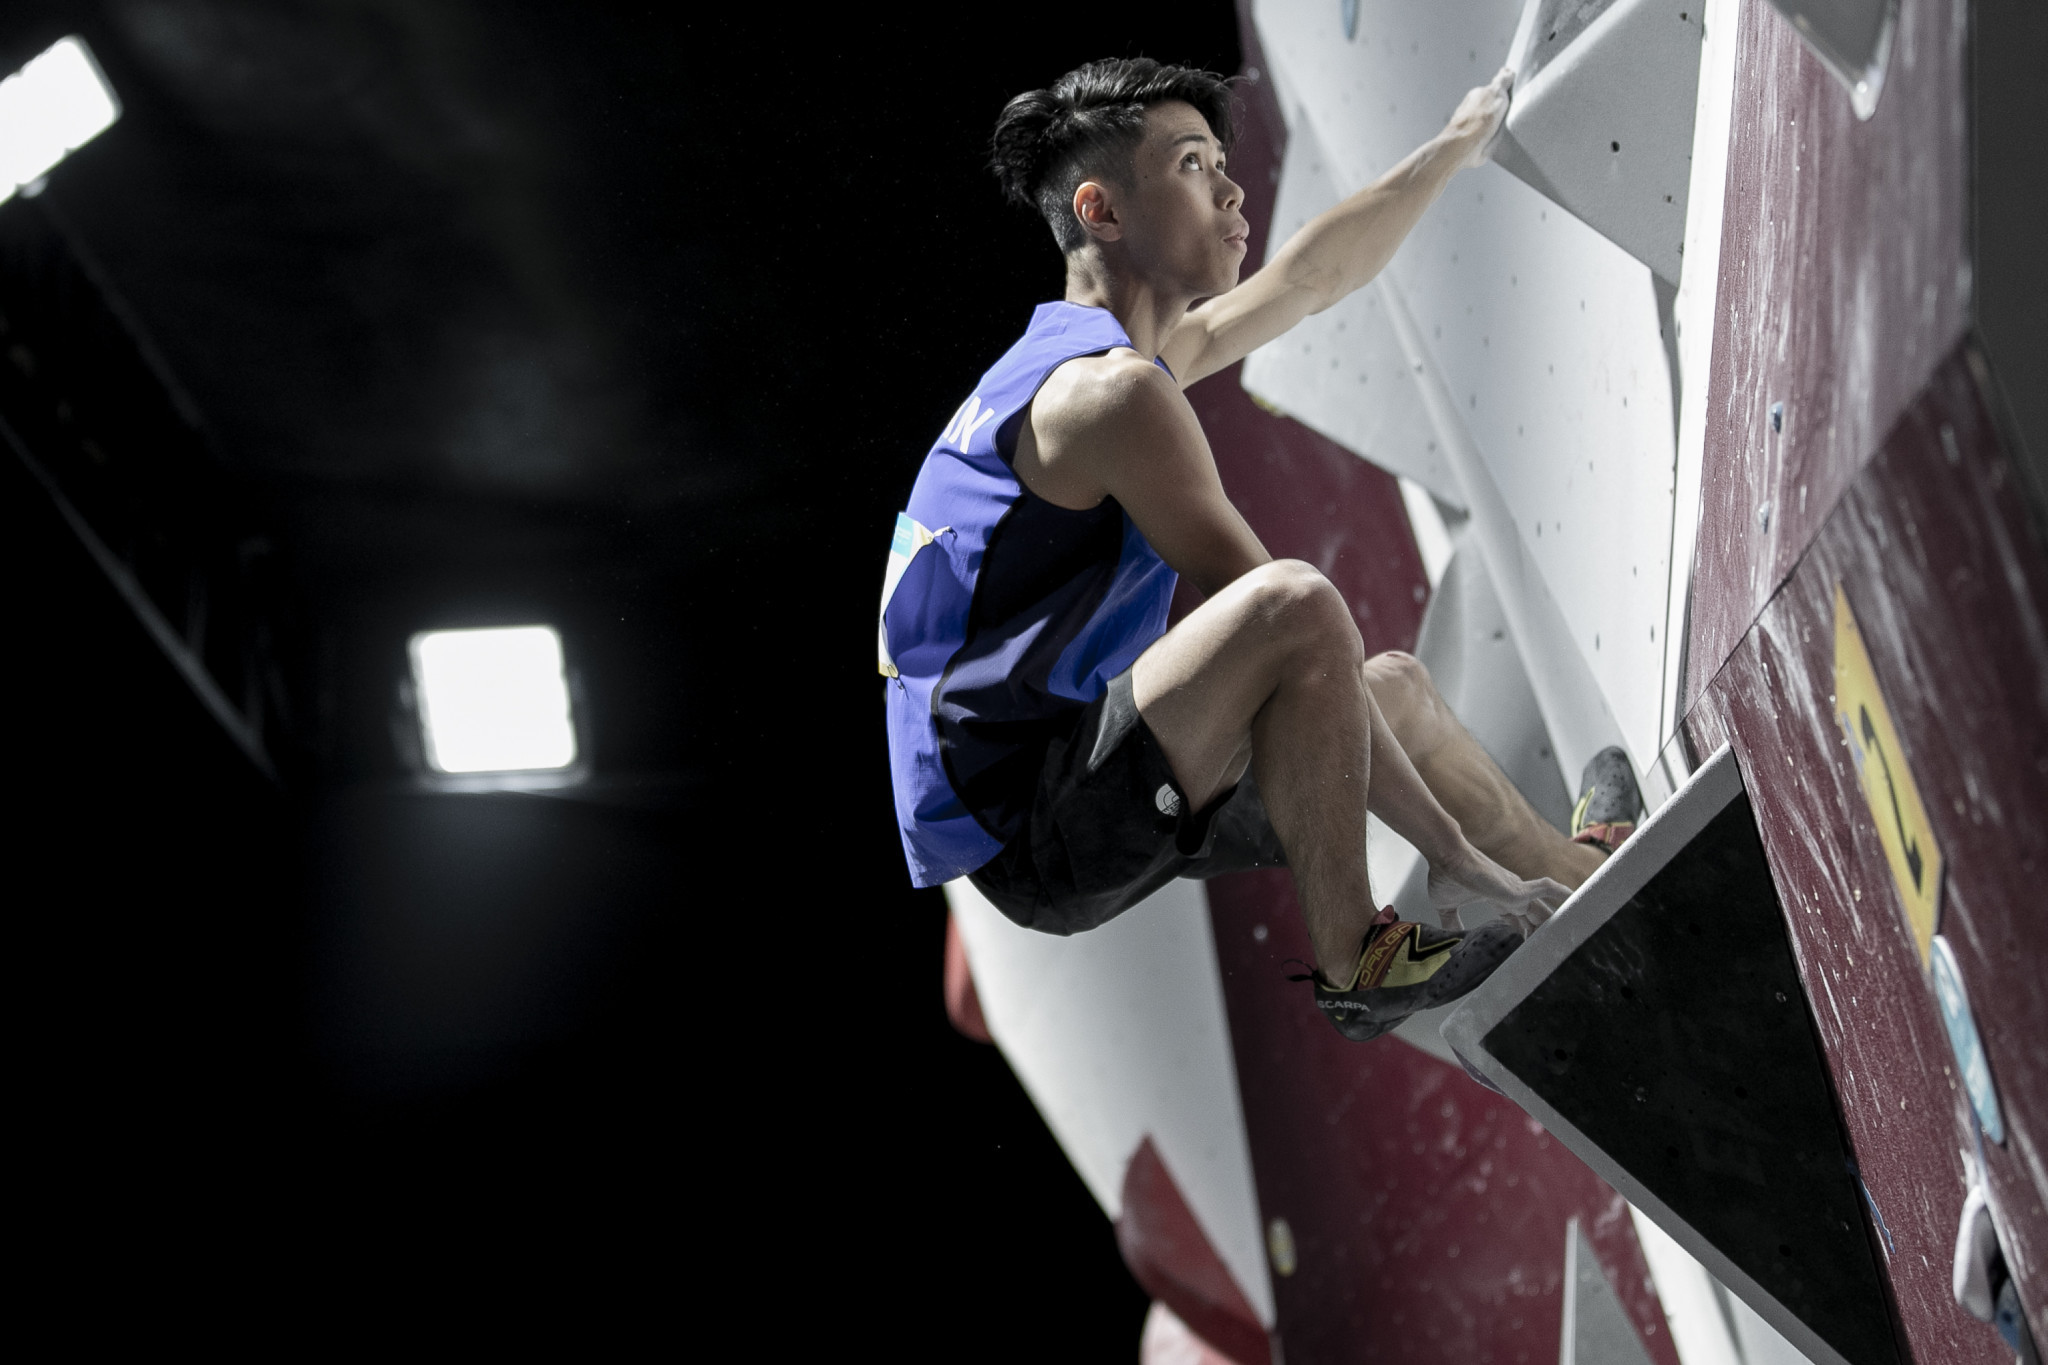 Japan win ANOC World Beach Games bouldering golds to raise Tokyo 2020 hopes